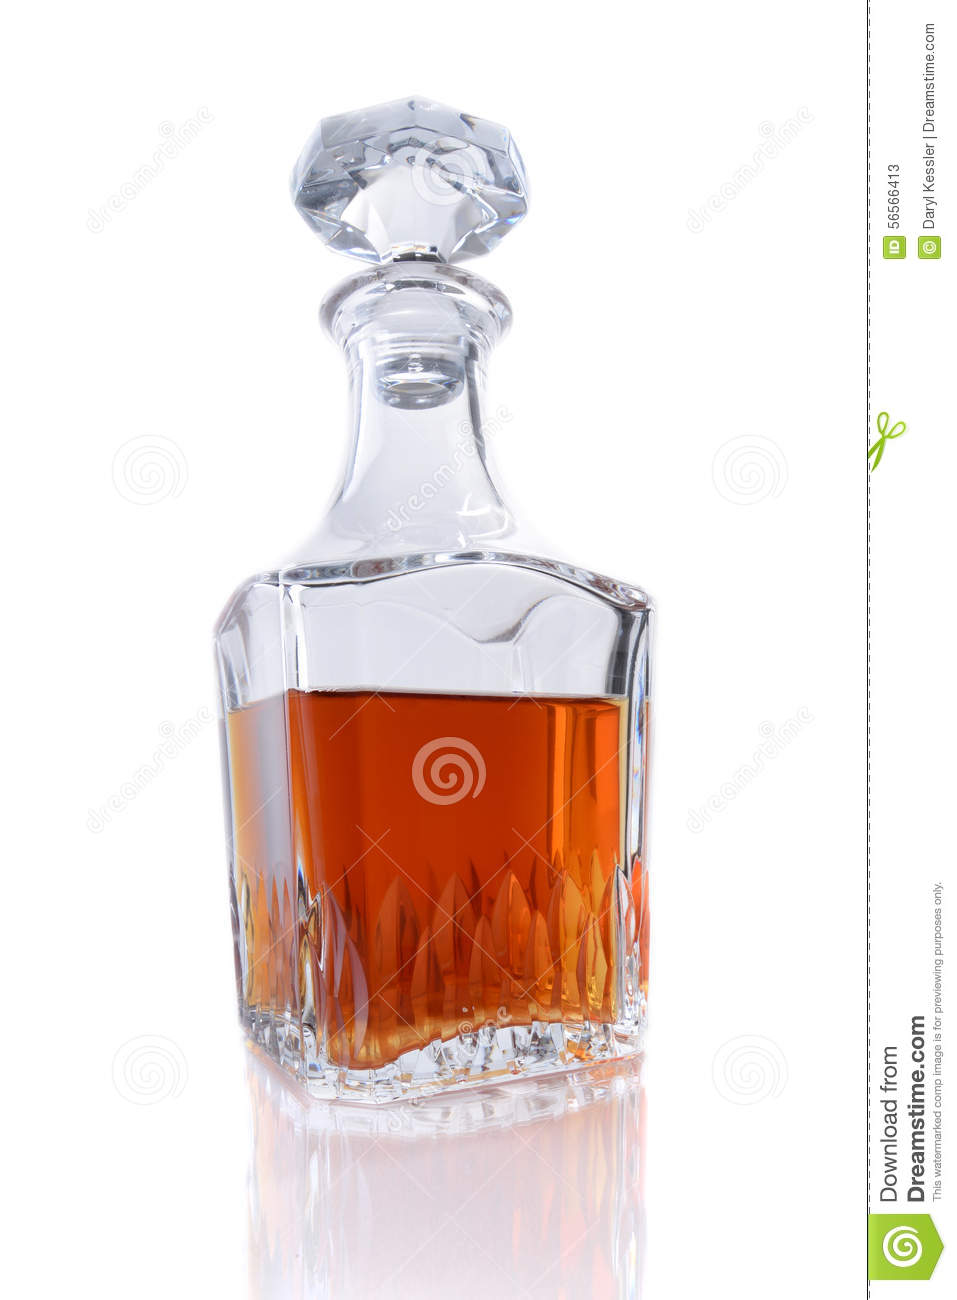 bottle of bourbon whiskey on a white background stock image image 56566413. Black Bedroom Furniture Sets. Home Design Ideas